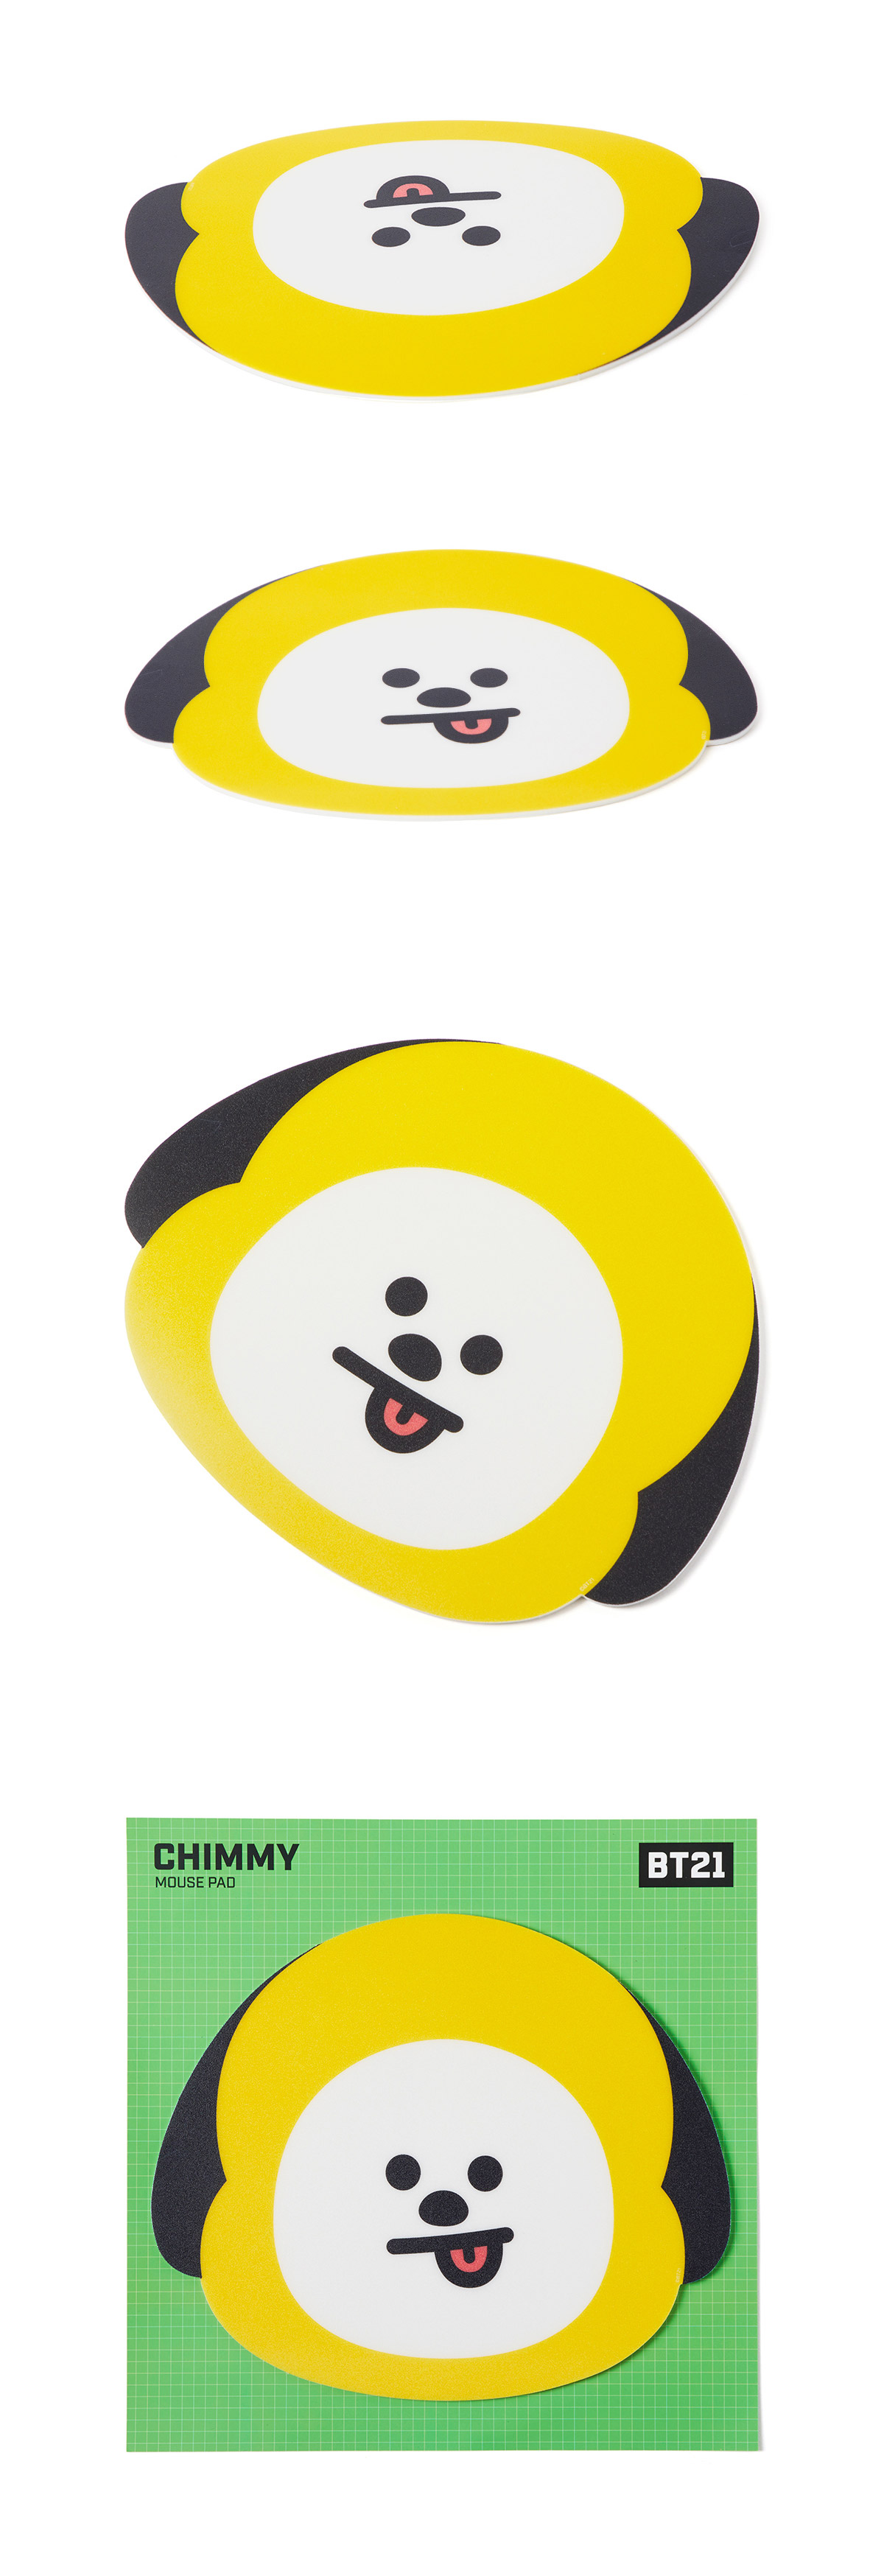 bt21_mousepad_04.jpg